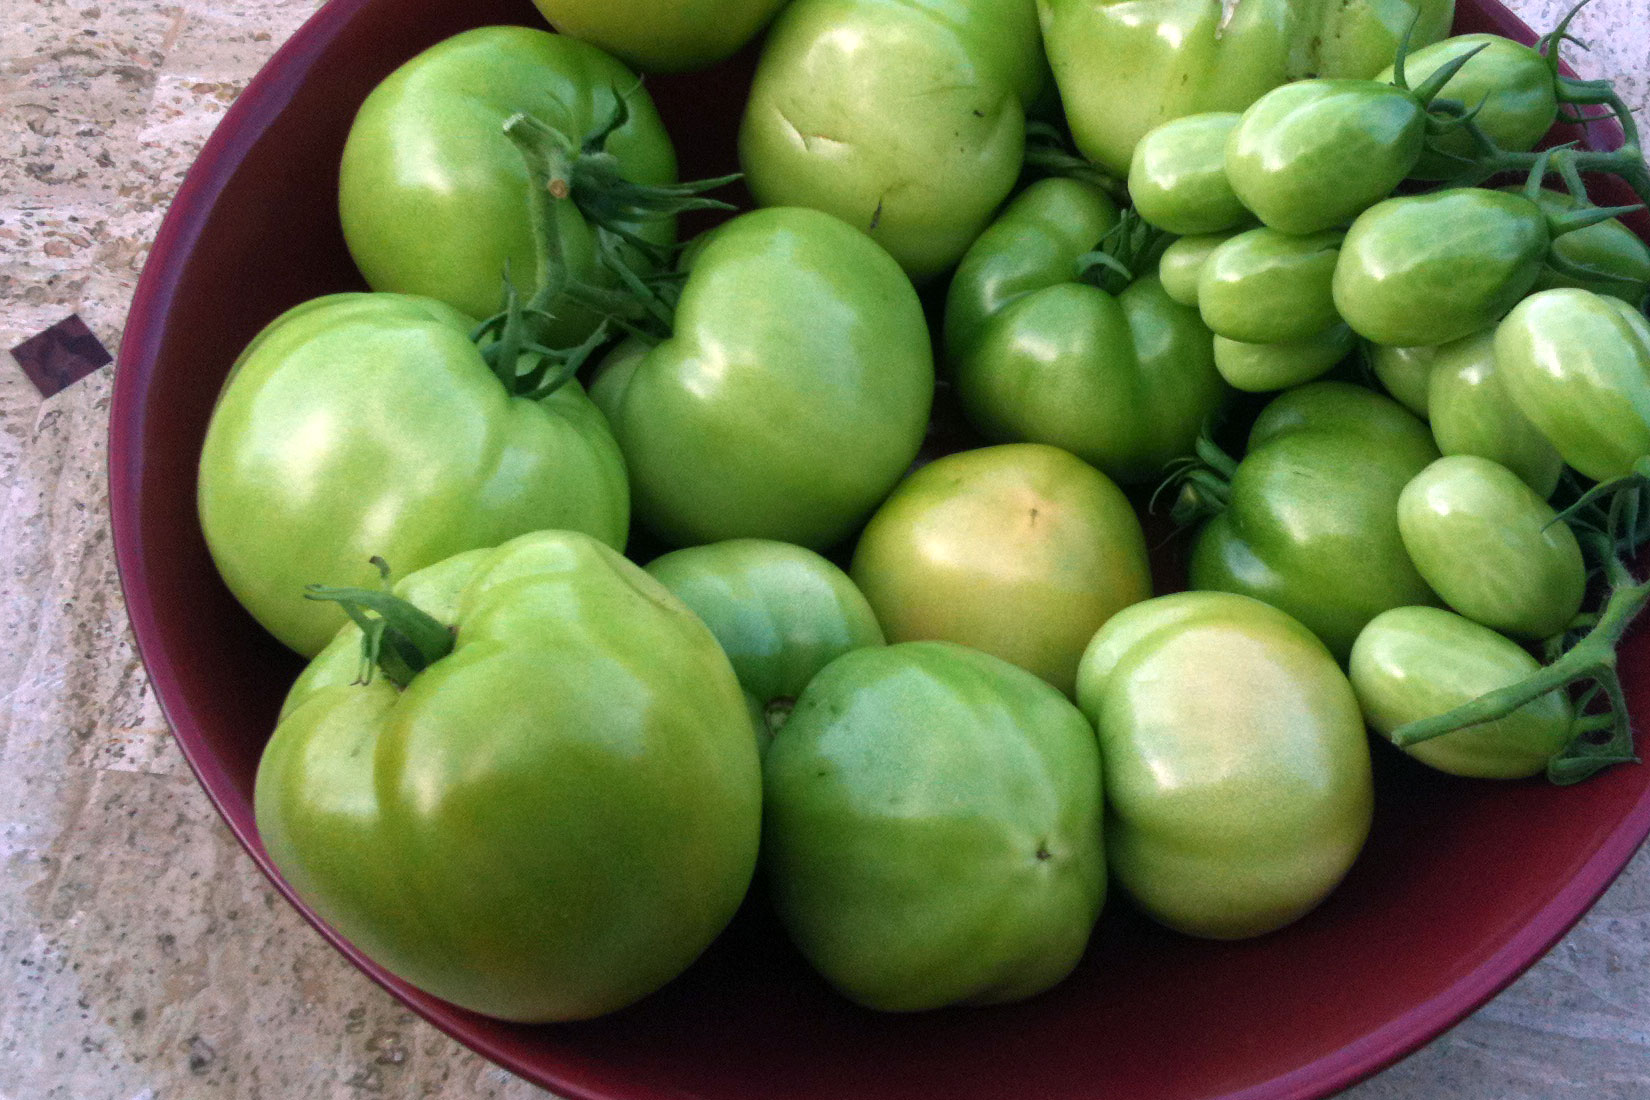 bowl of green tomatoes